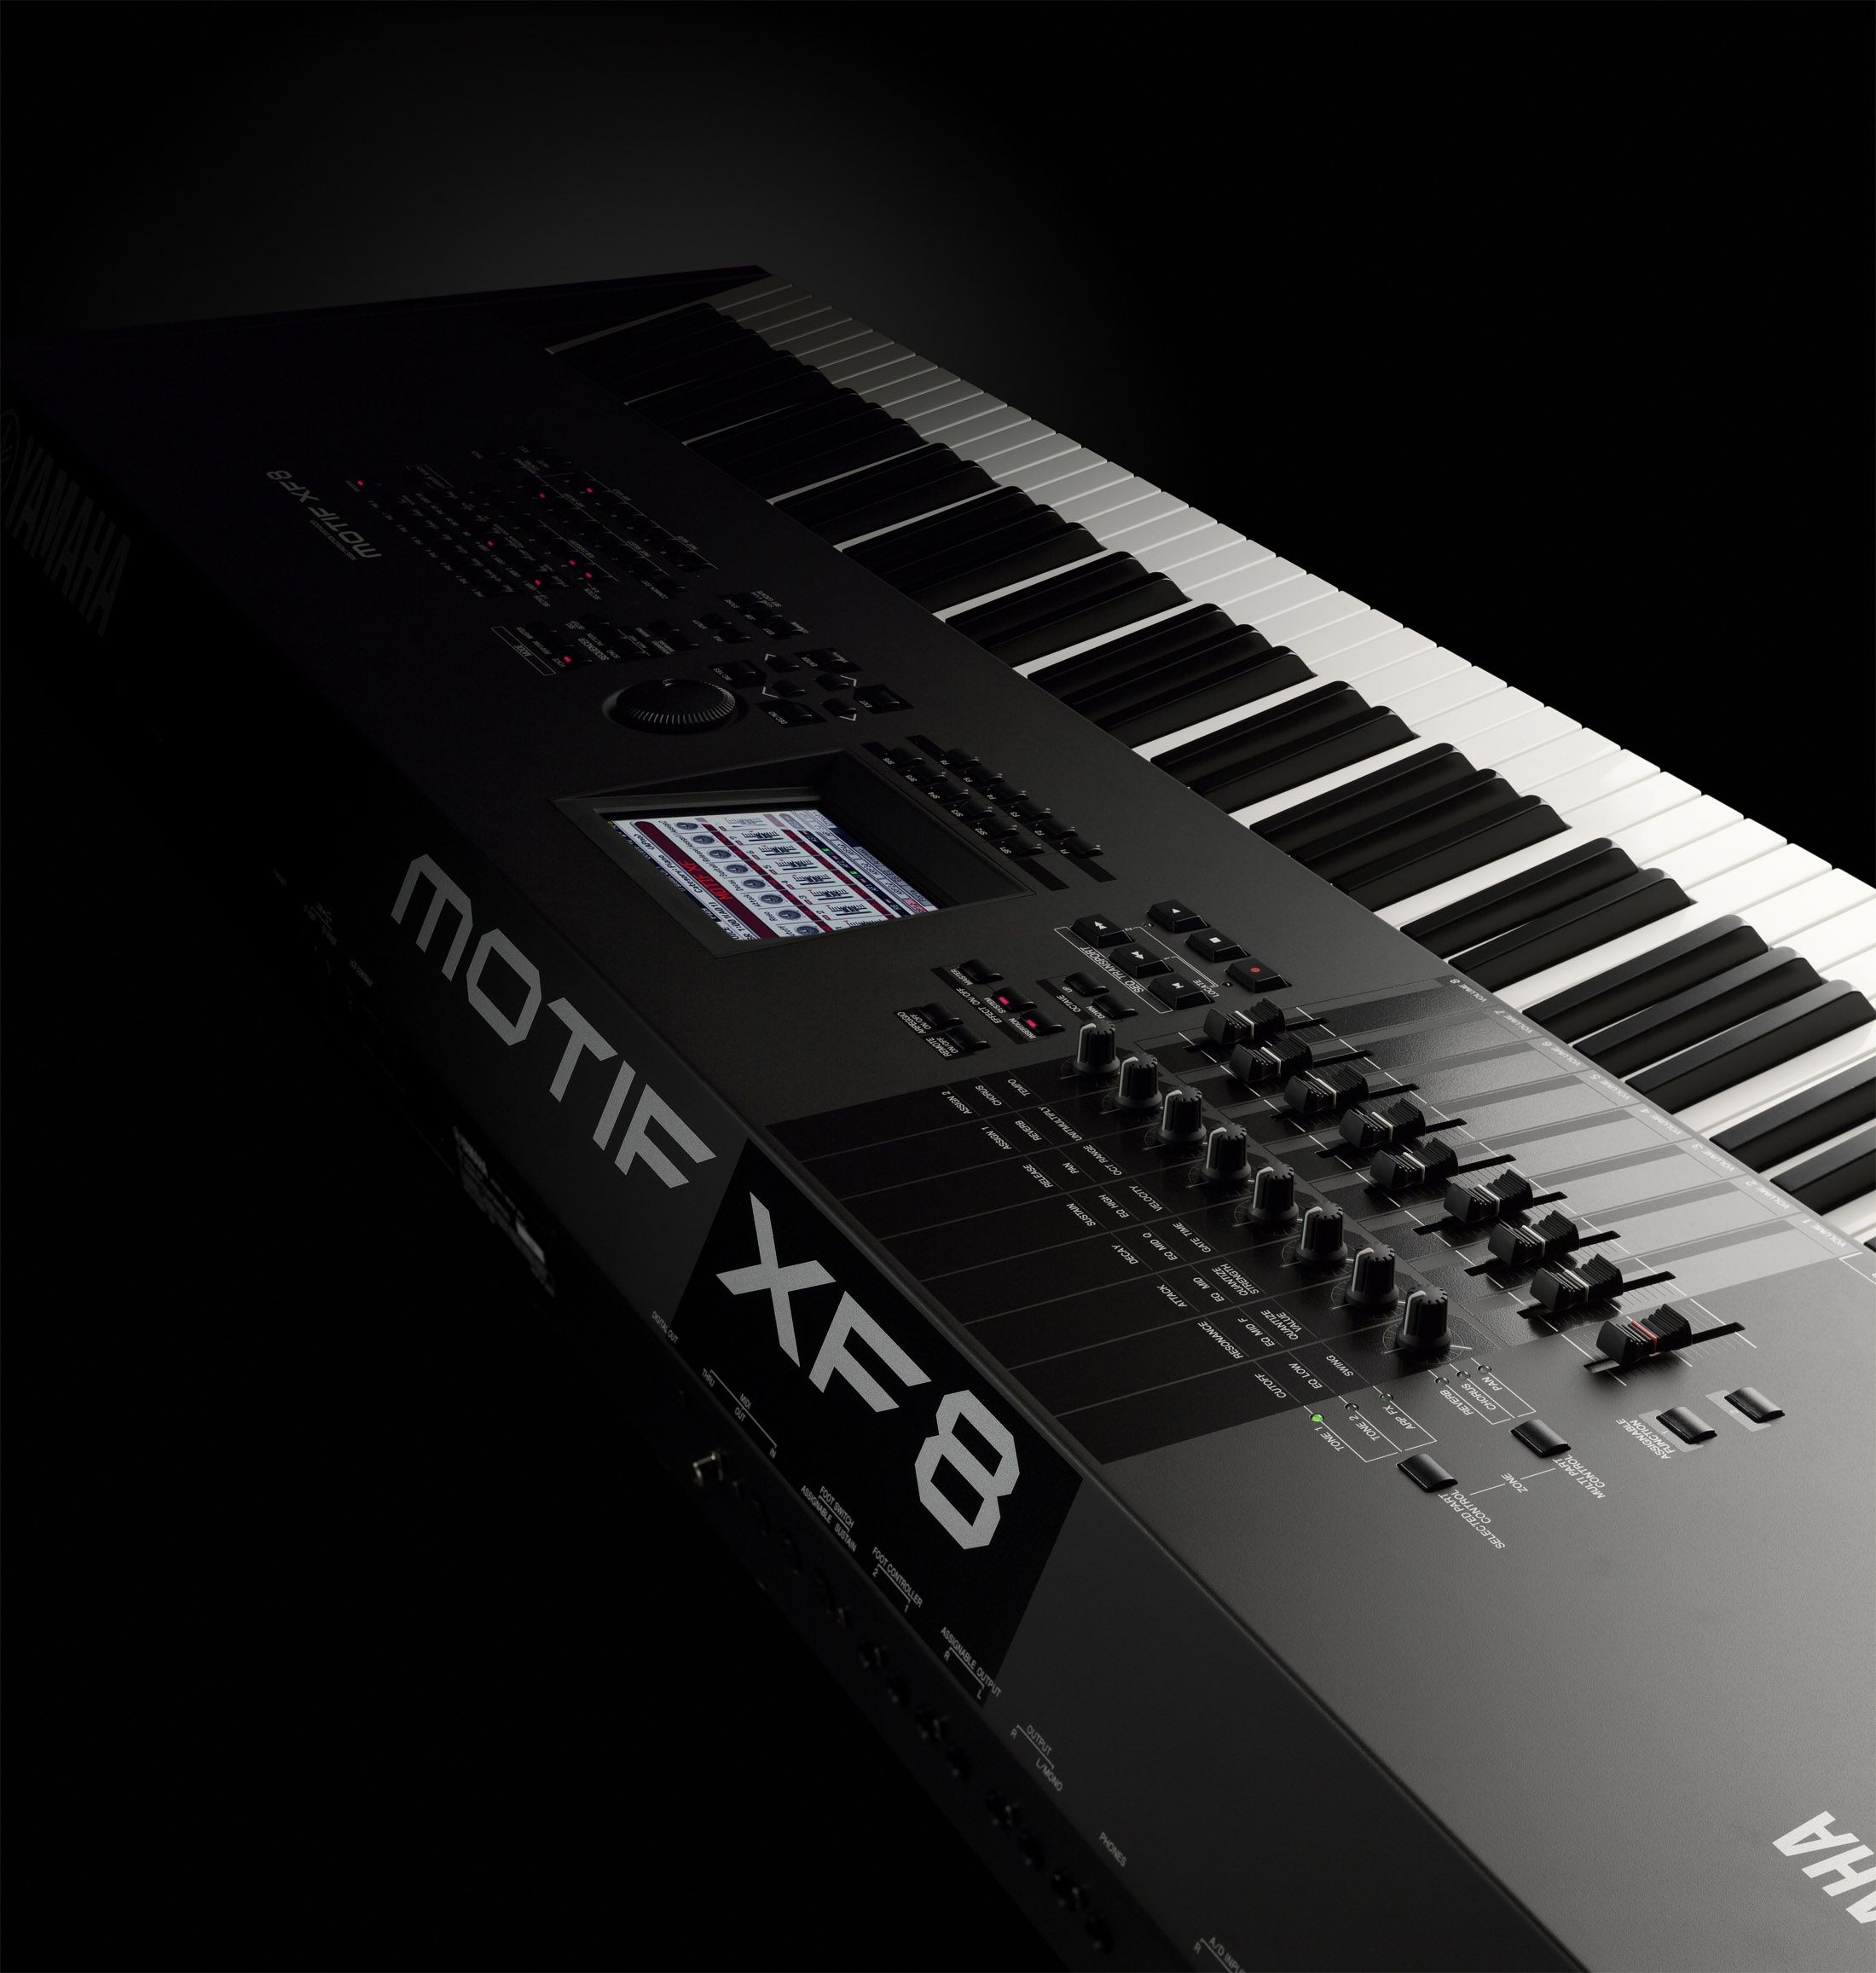 Yamaha Motif Xf8 I Wanted One Of These For The Longest Time But Keyboard Wiring Diagram Will Have To Wait Few More Years